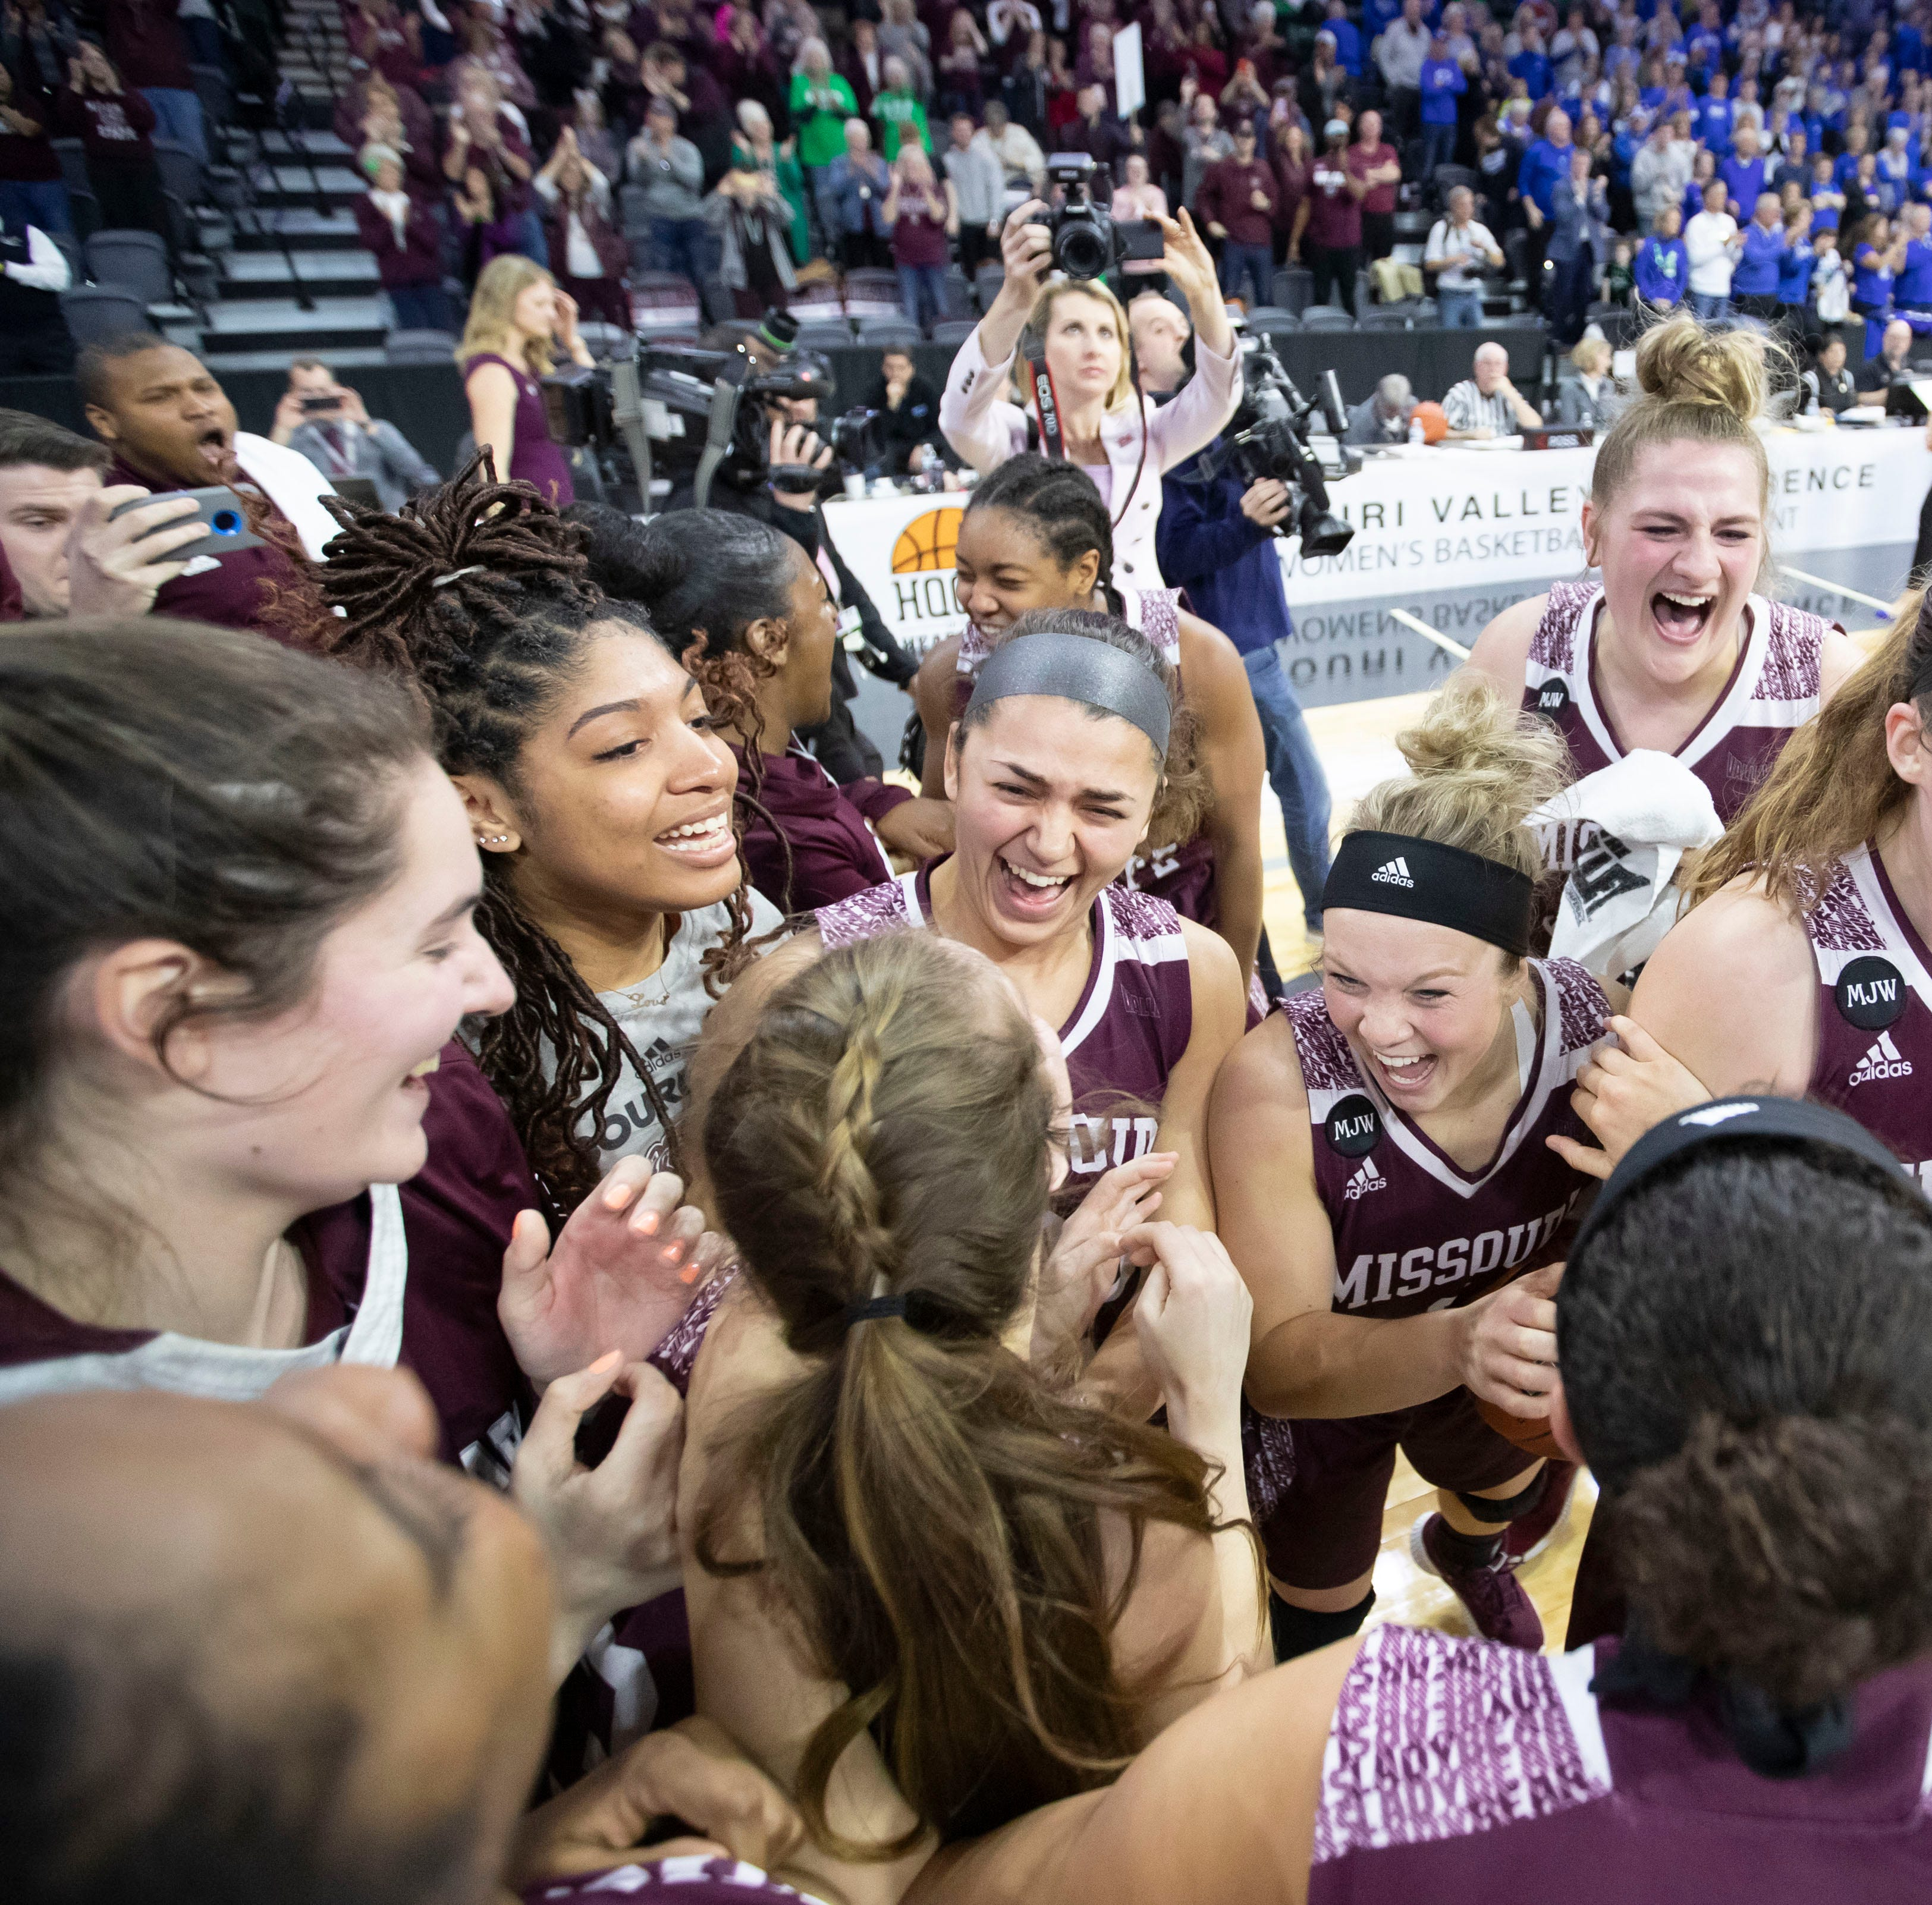 Going dancing! Lady Bears win MVC Tournament title, claim NCAA Tournament bid